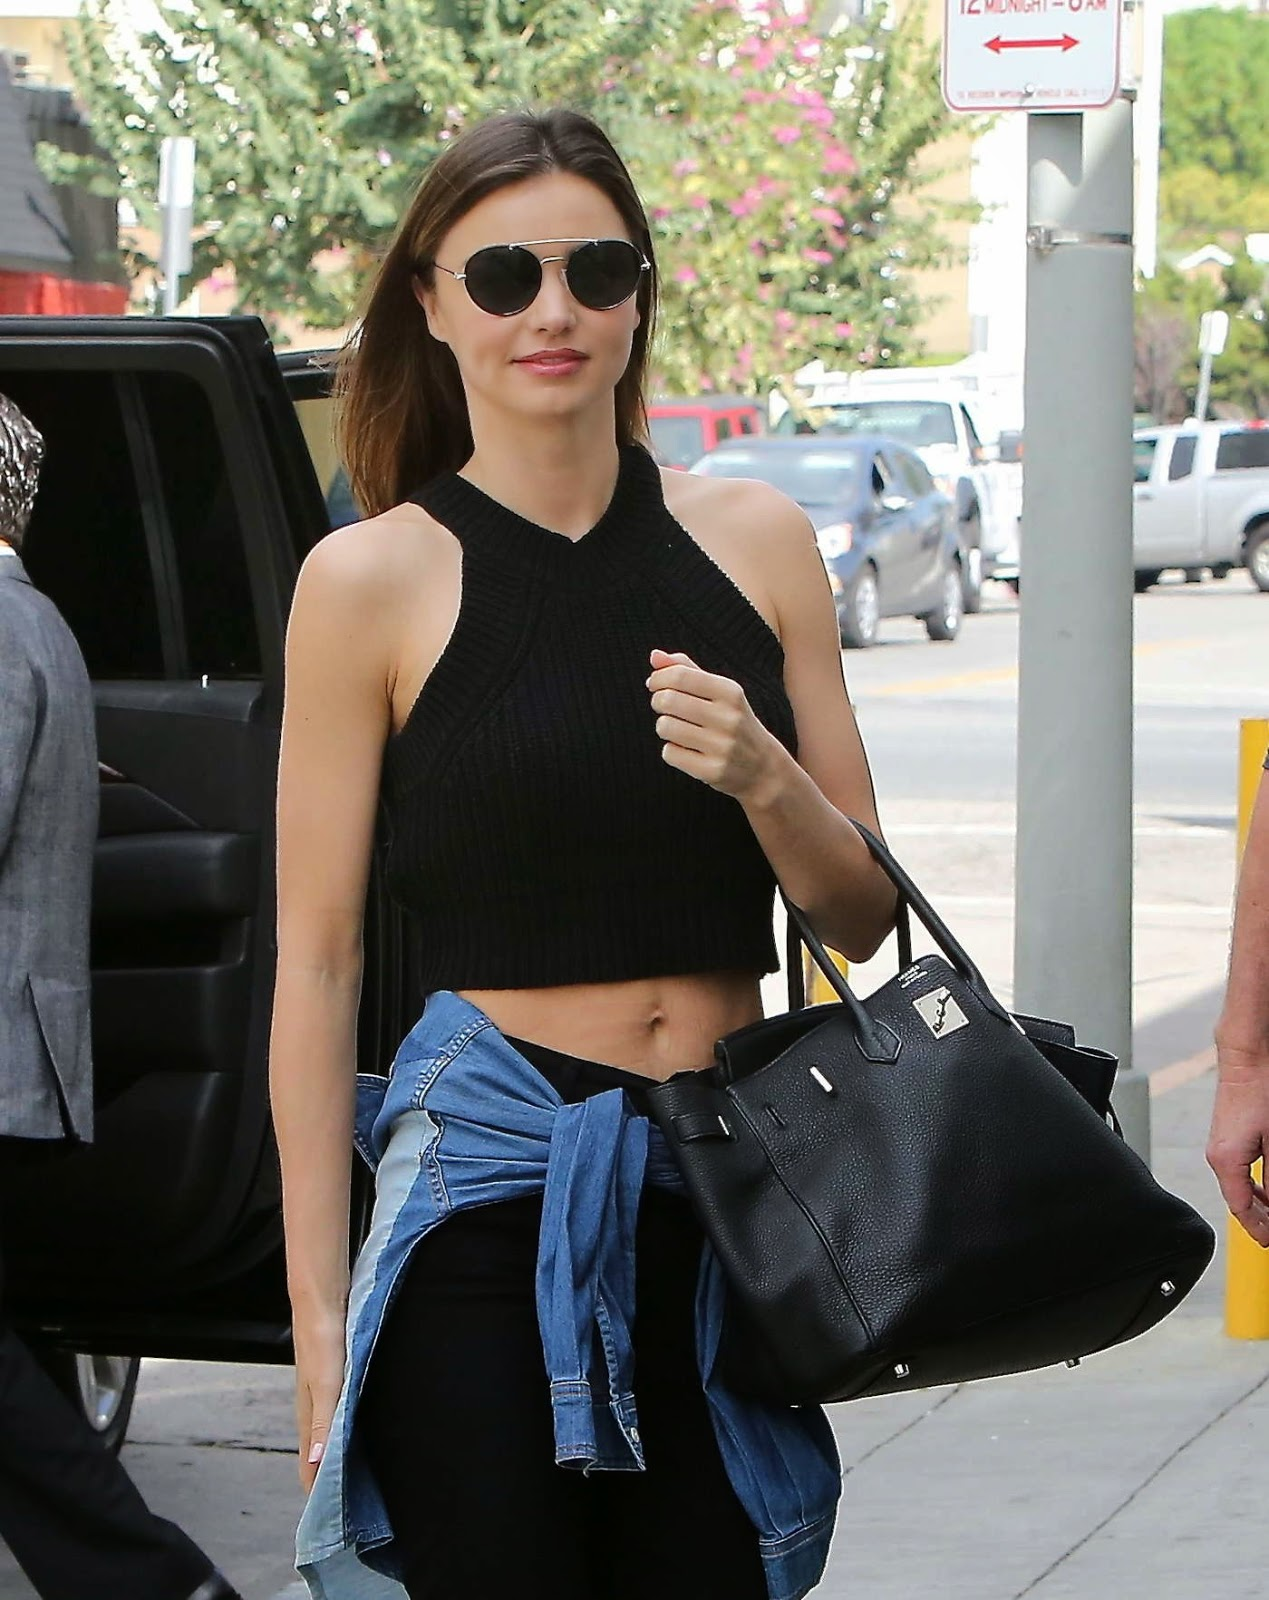 Miranda Kerr in a cropped top and jeans in Santa Monica